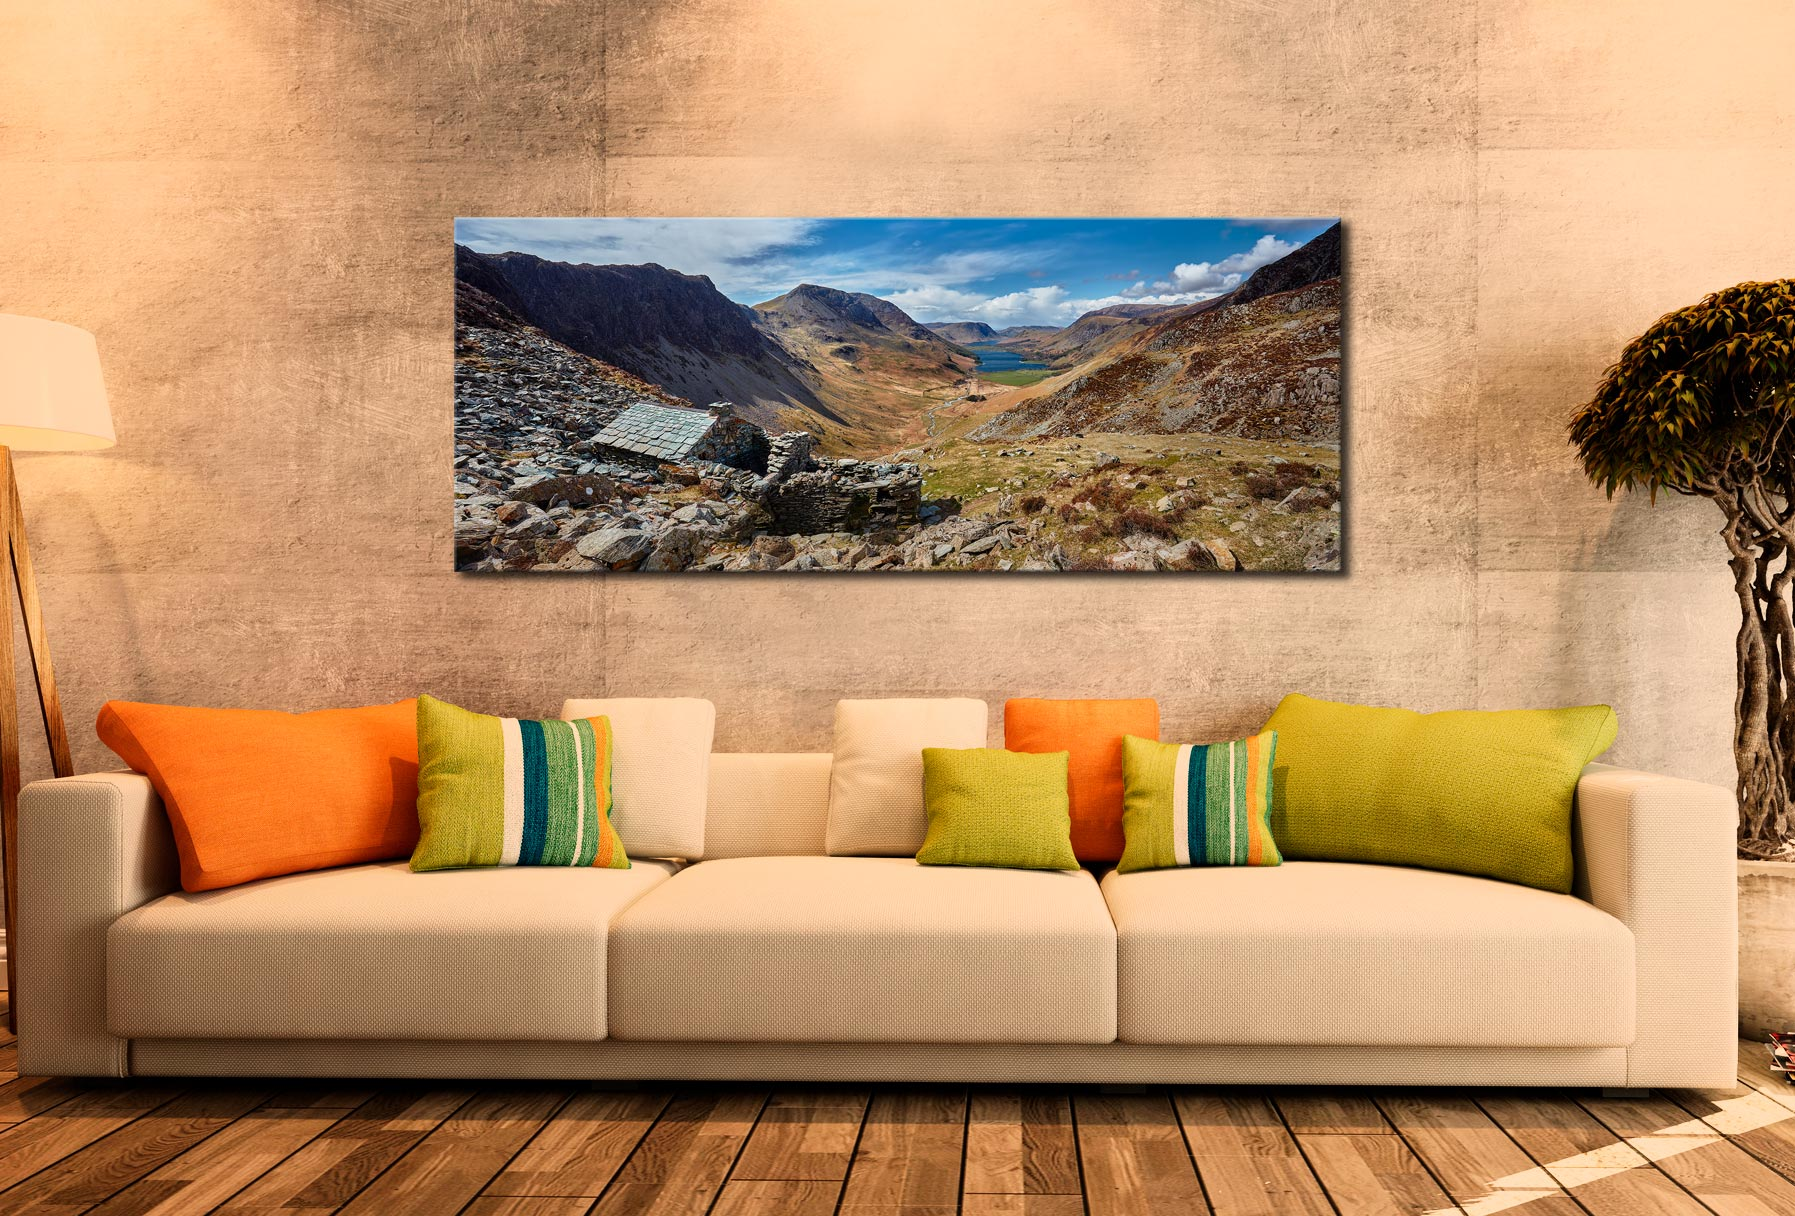 Warnscale Bothy and Buttermere Valley - Print Aluminium Backing With Acrylic Glazing on Wall